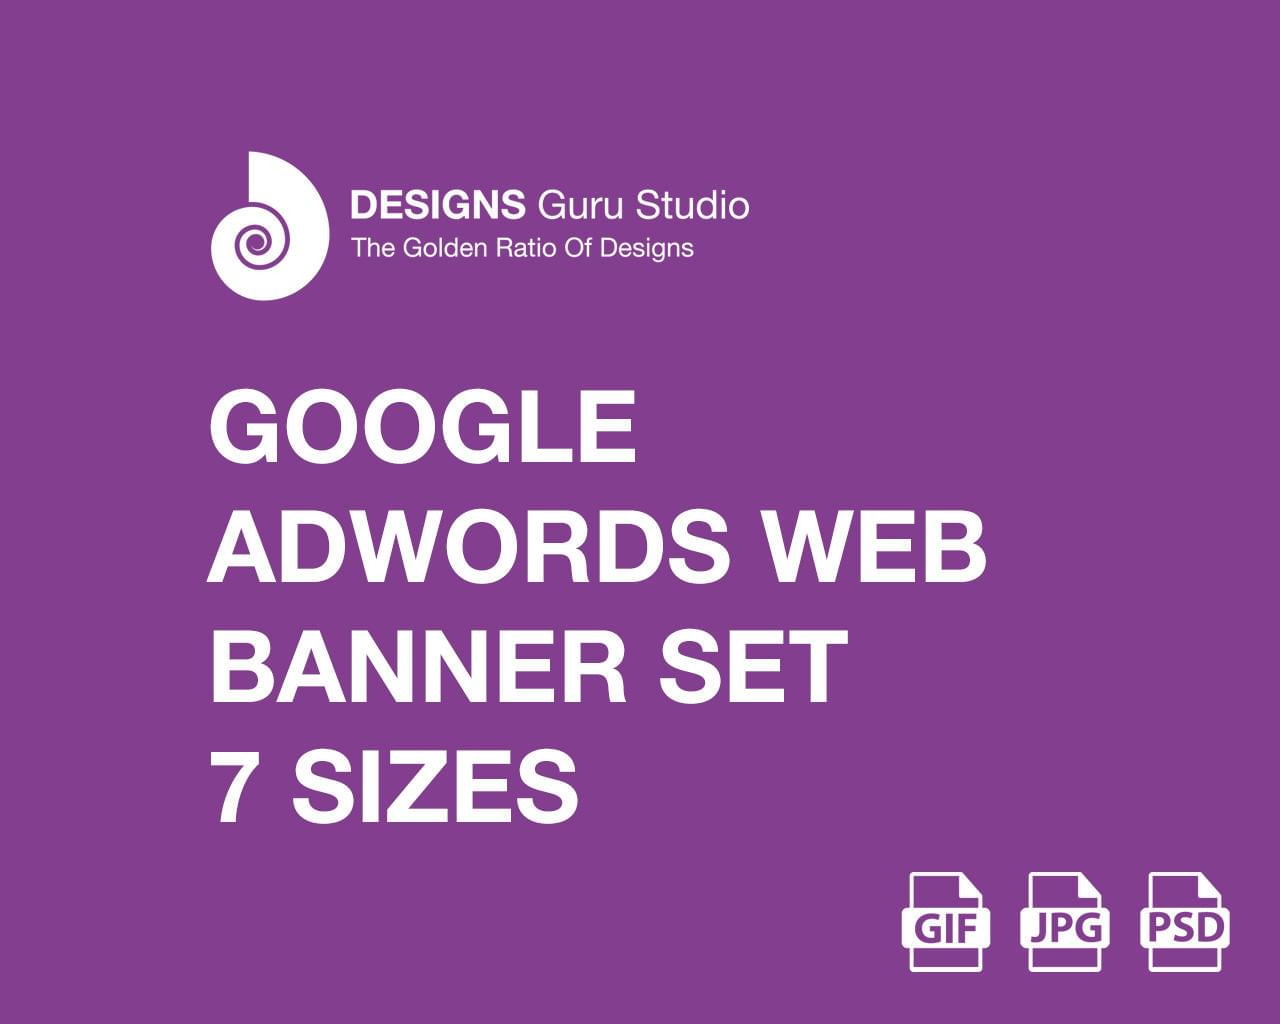 Google AdWords Web Banner Set - 7 Sizes (GIF/JPG) by designsgurustudio - 115318